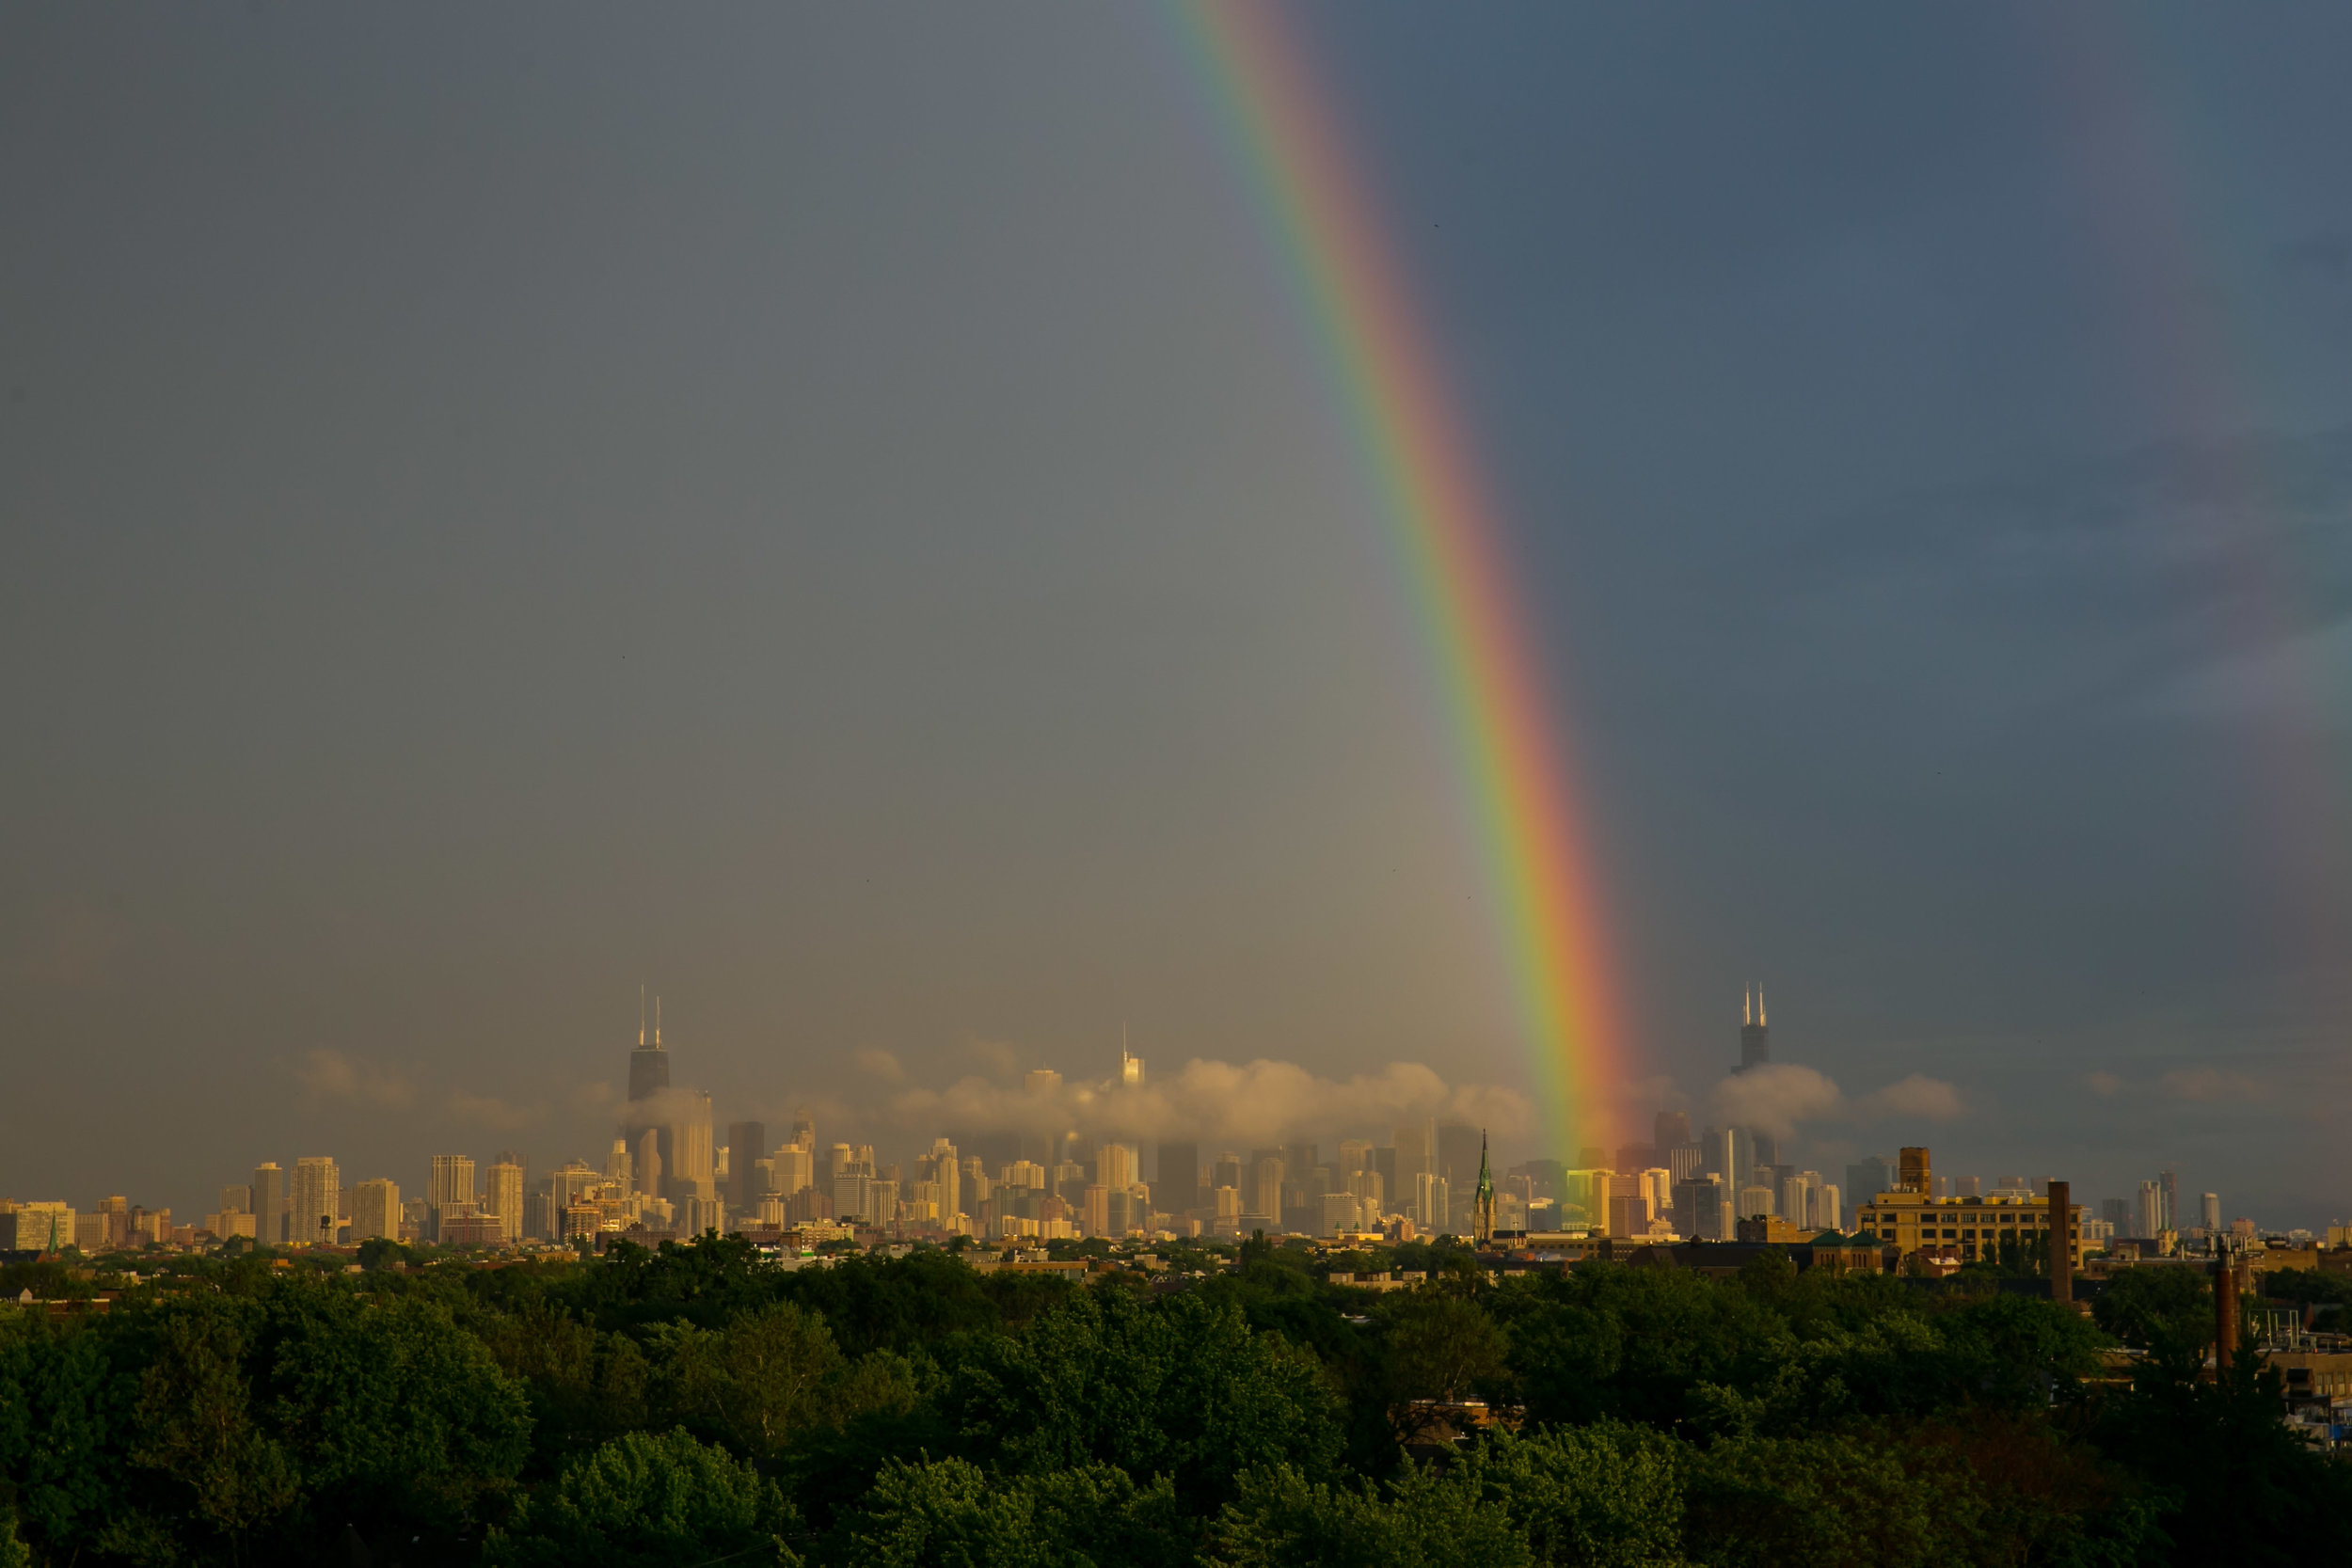 Rainbow_5.30.18_by_ElliotMandel-1-2.jpg